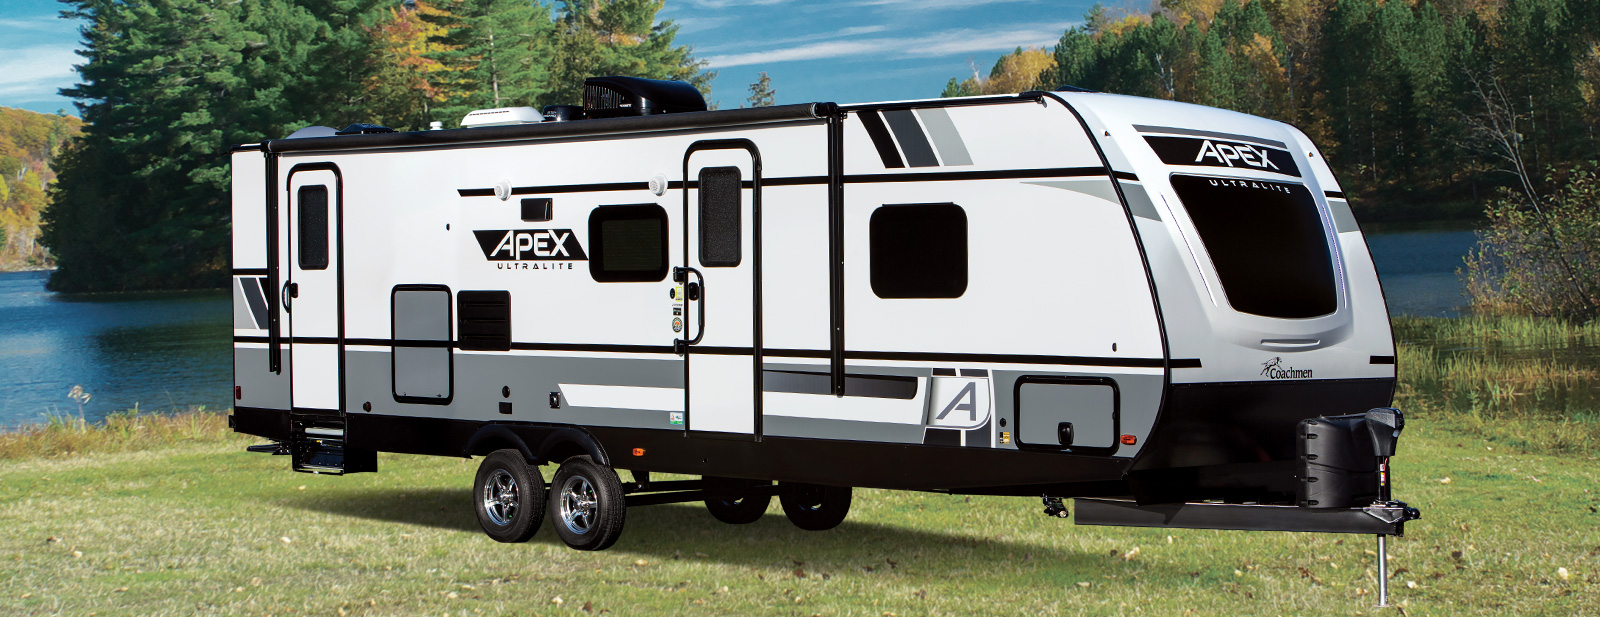 Apex Ultra-Lite Travel Trailers by Coachmen RV on